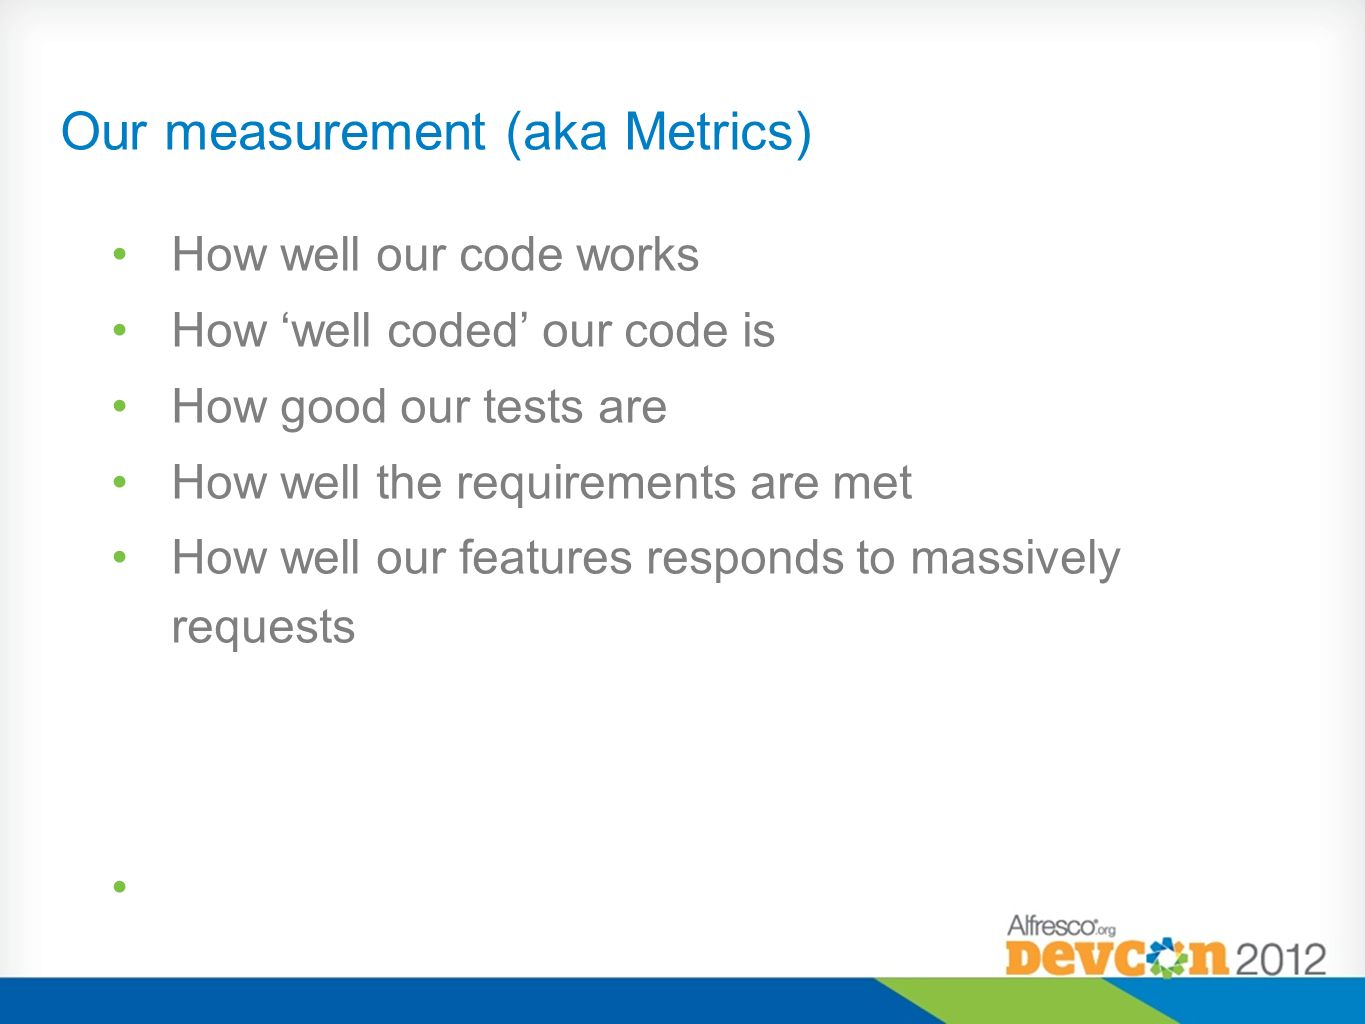 Our measurement (aka Metrics) How well our code works How well coded our code is How good our tests are How well the requirements are met How well our